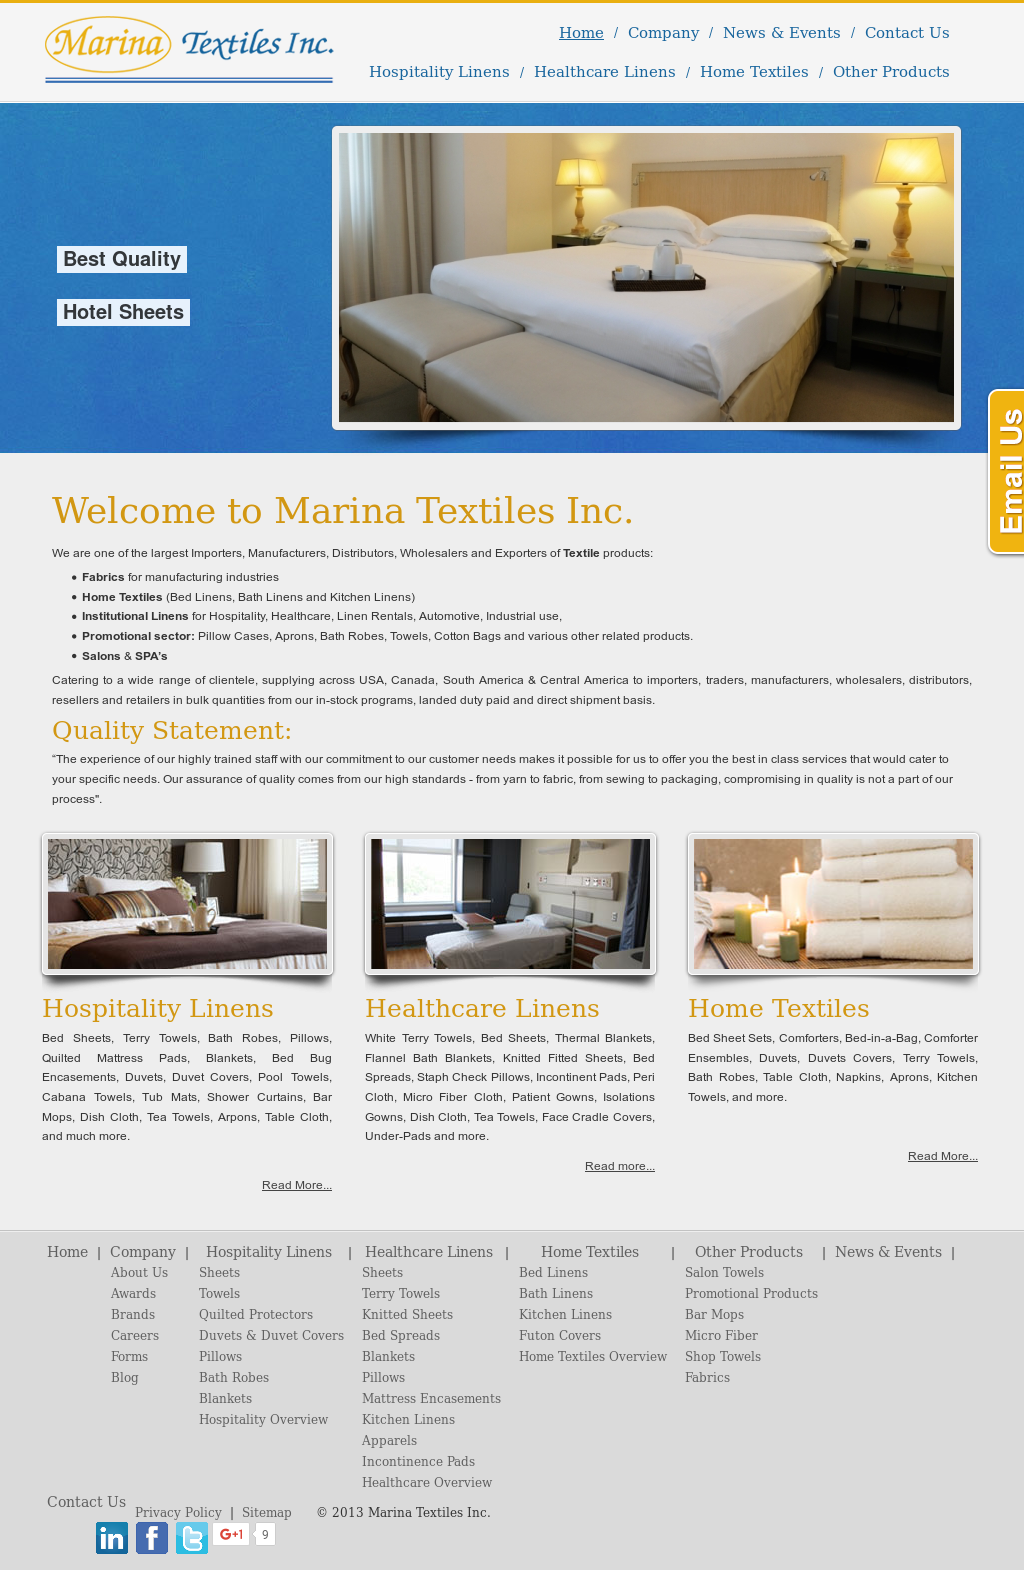 Marina Textiles Competitors, Revenue and Employees - Owler Company